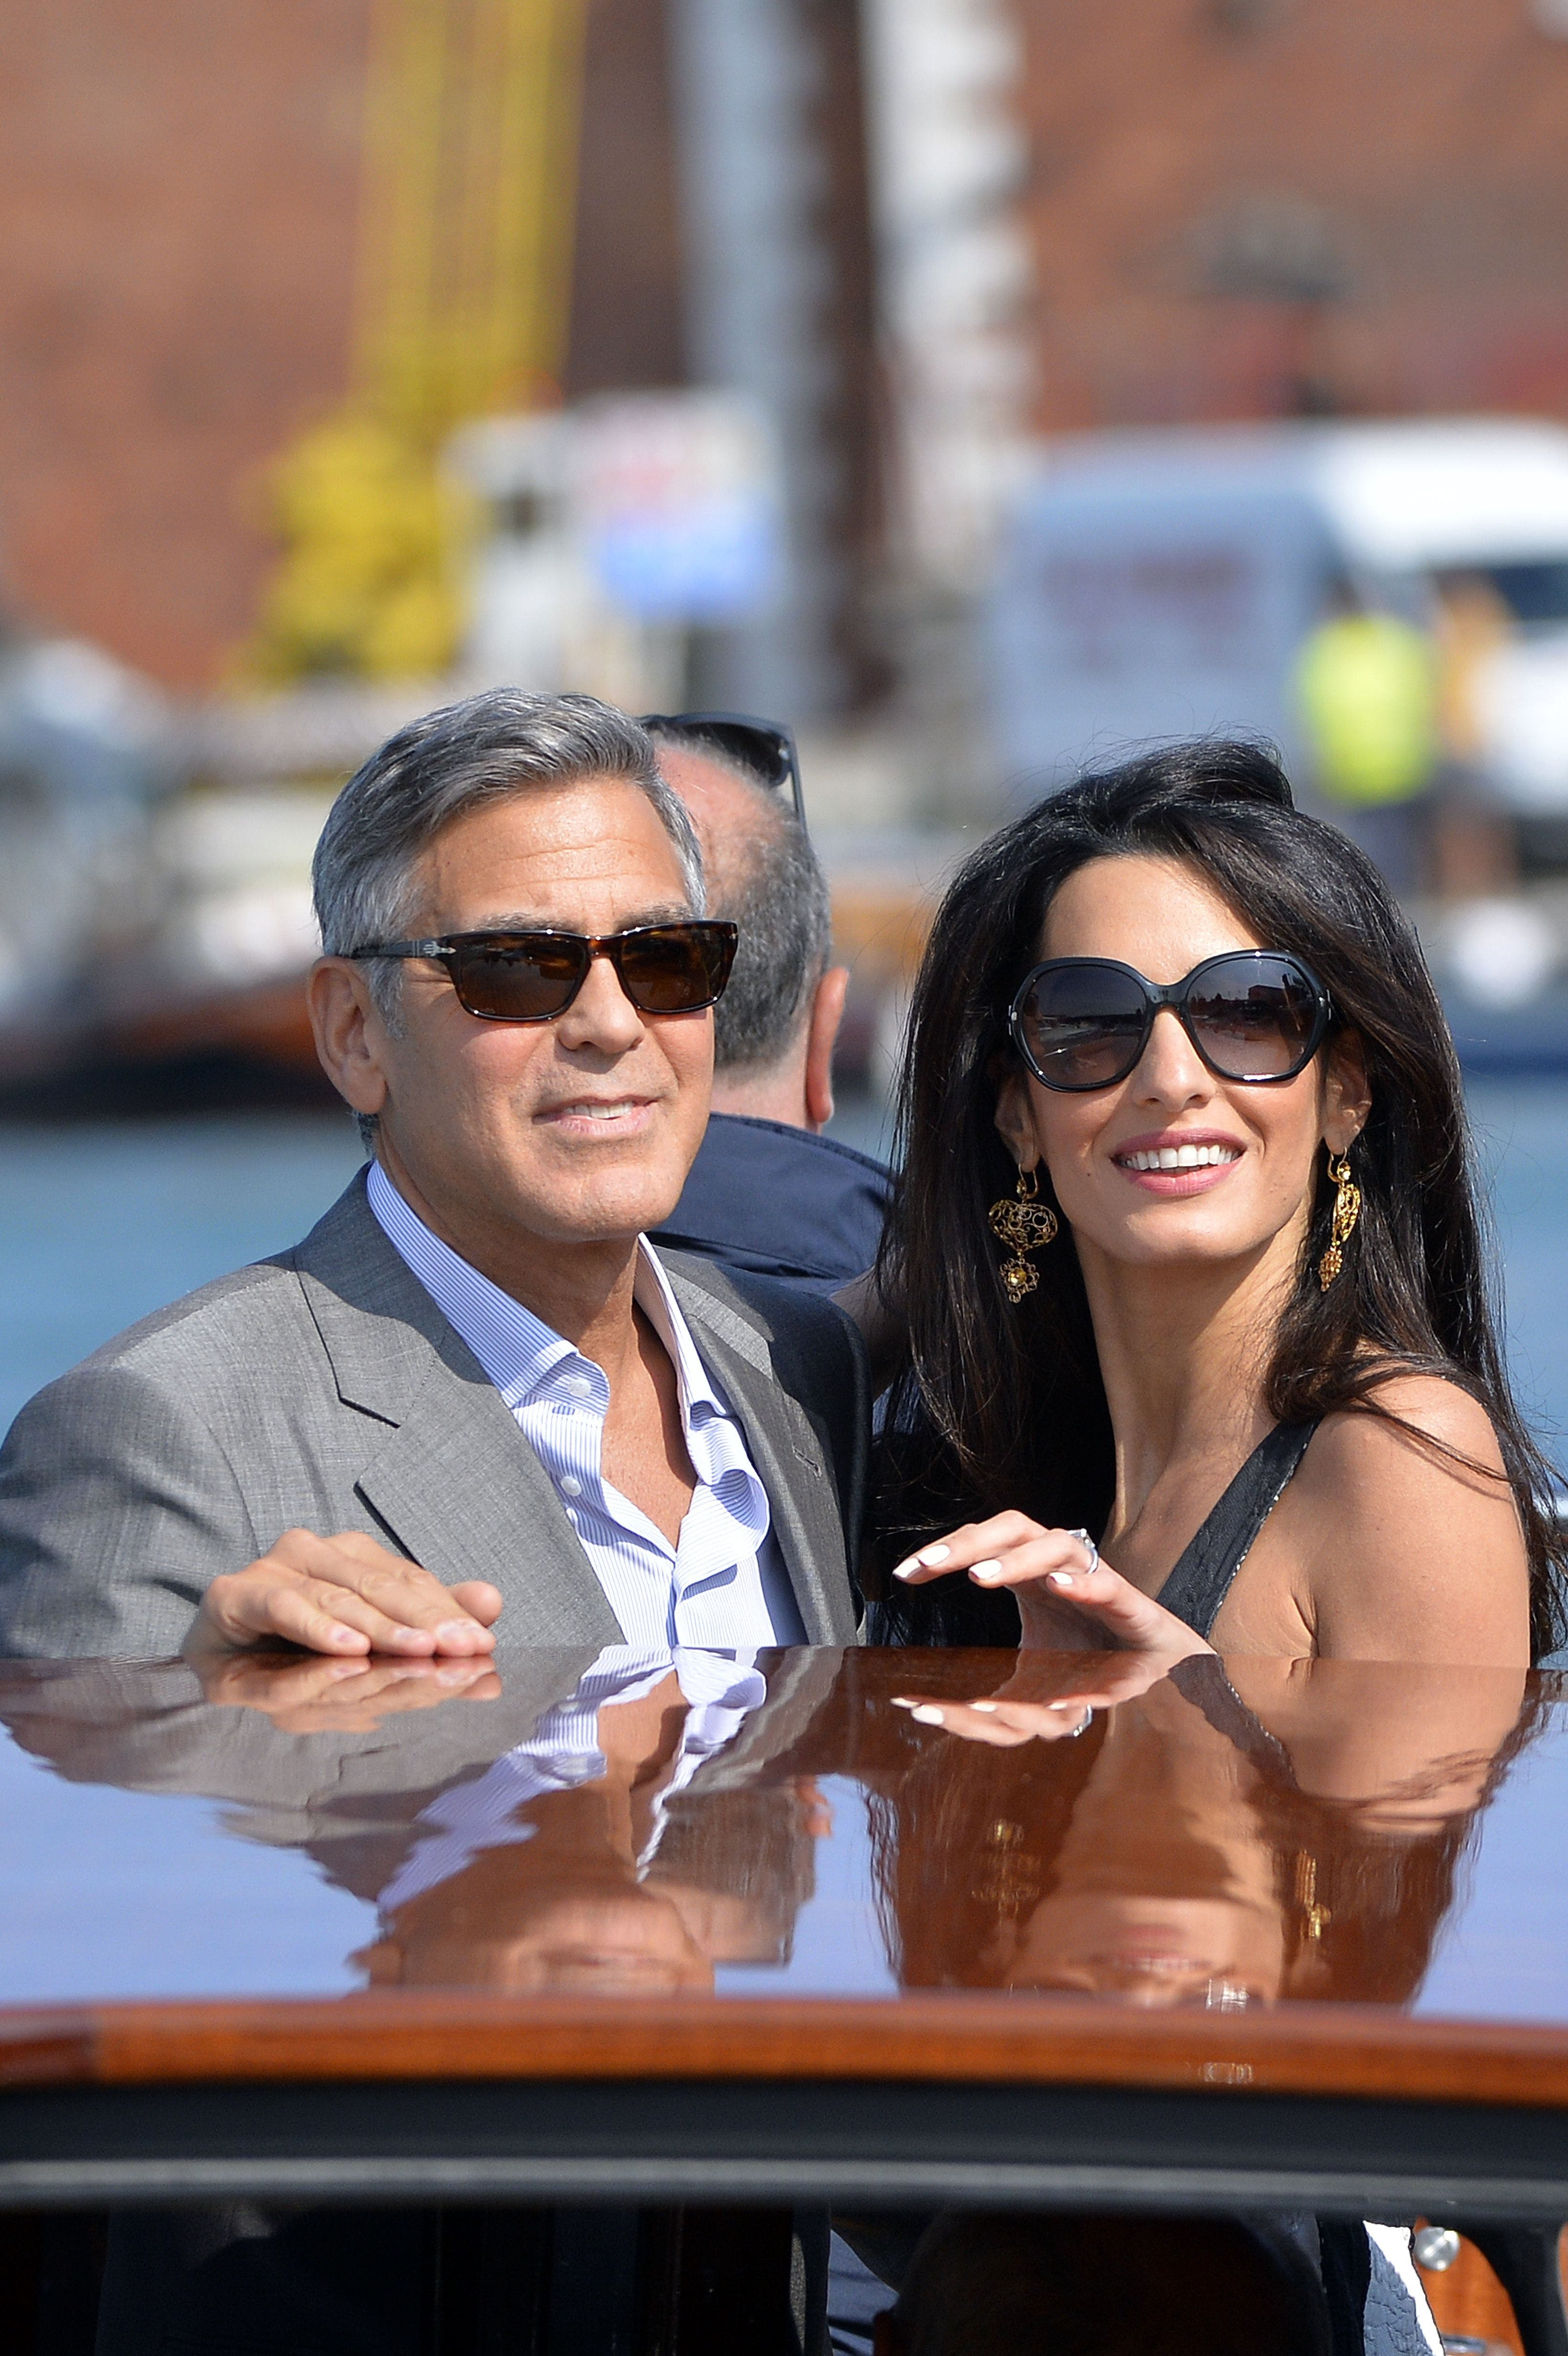 George Clooney (L) and Amal Alamuddin (R), his Lebanon-born British fiancee take a taxiboat upon their arrival in Venice, on September 26, 2014, on the eve of their wedding. (Reuters)